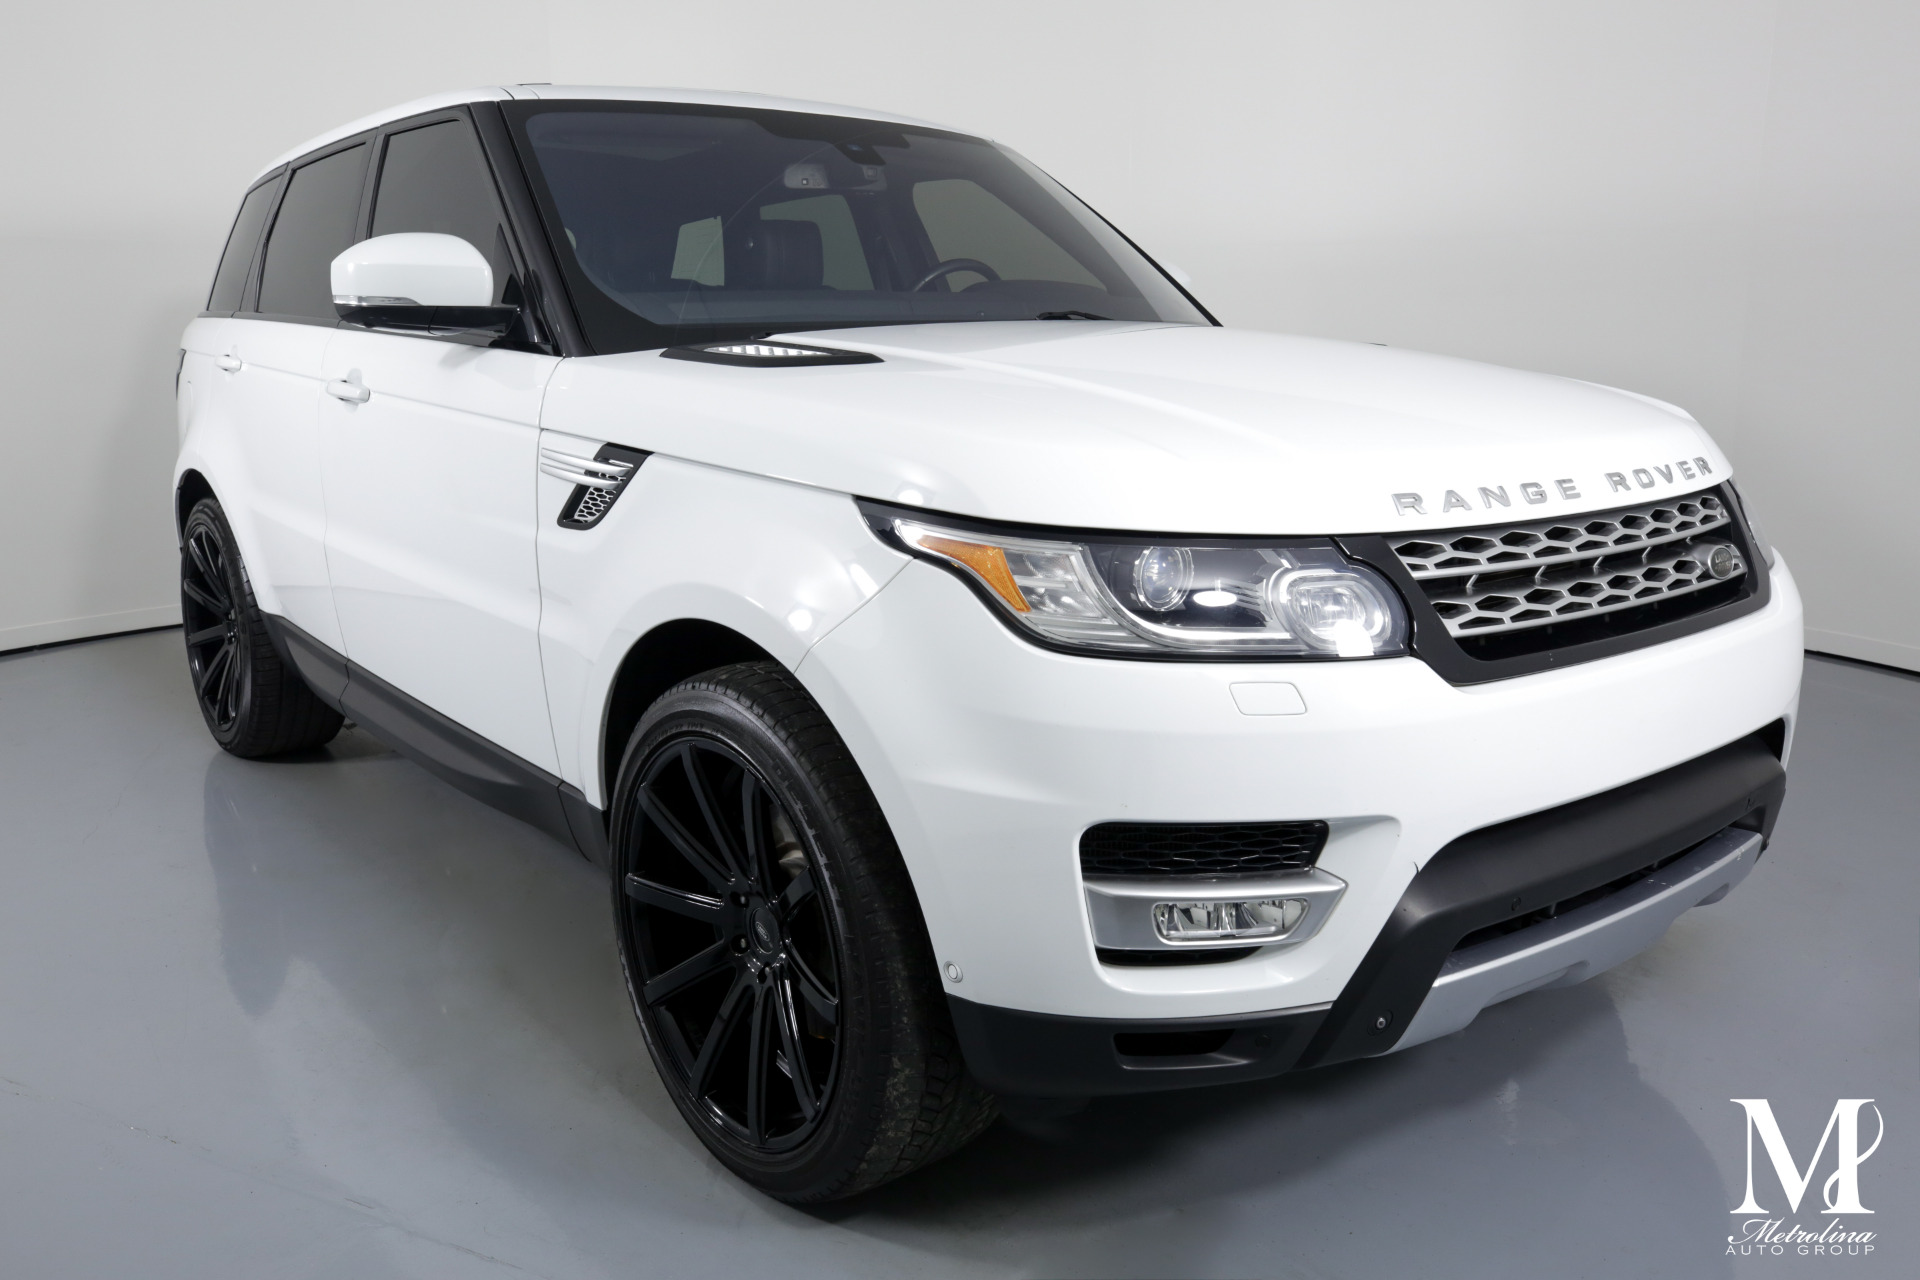 Used 2014 Land Rover Range Rover Sport HSE for sale $36,475 at Metrolina Auto Group in Charlotte NC 28217 - 2